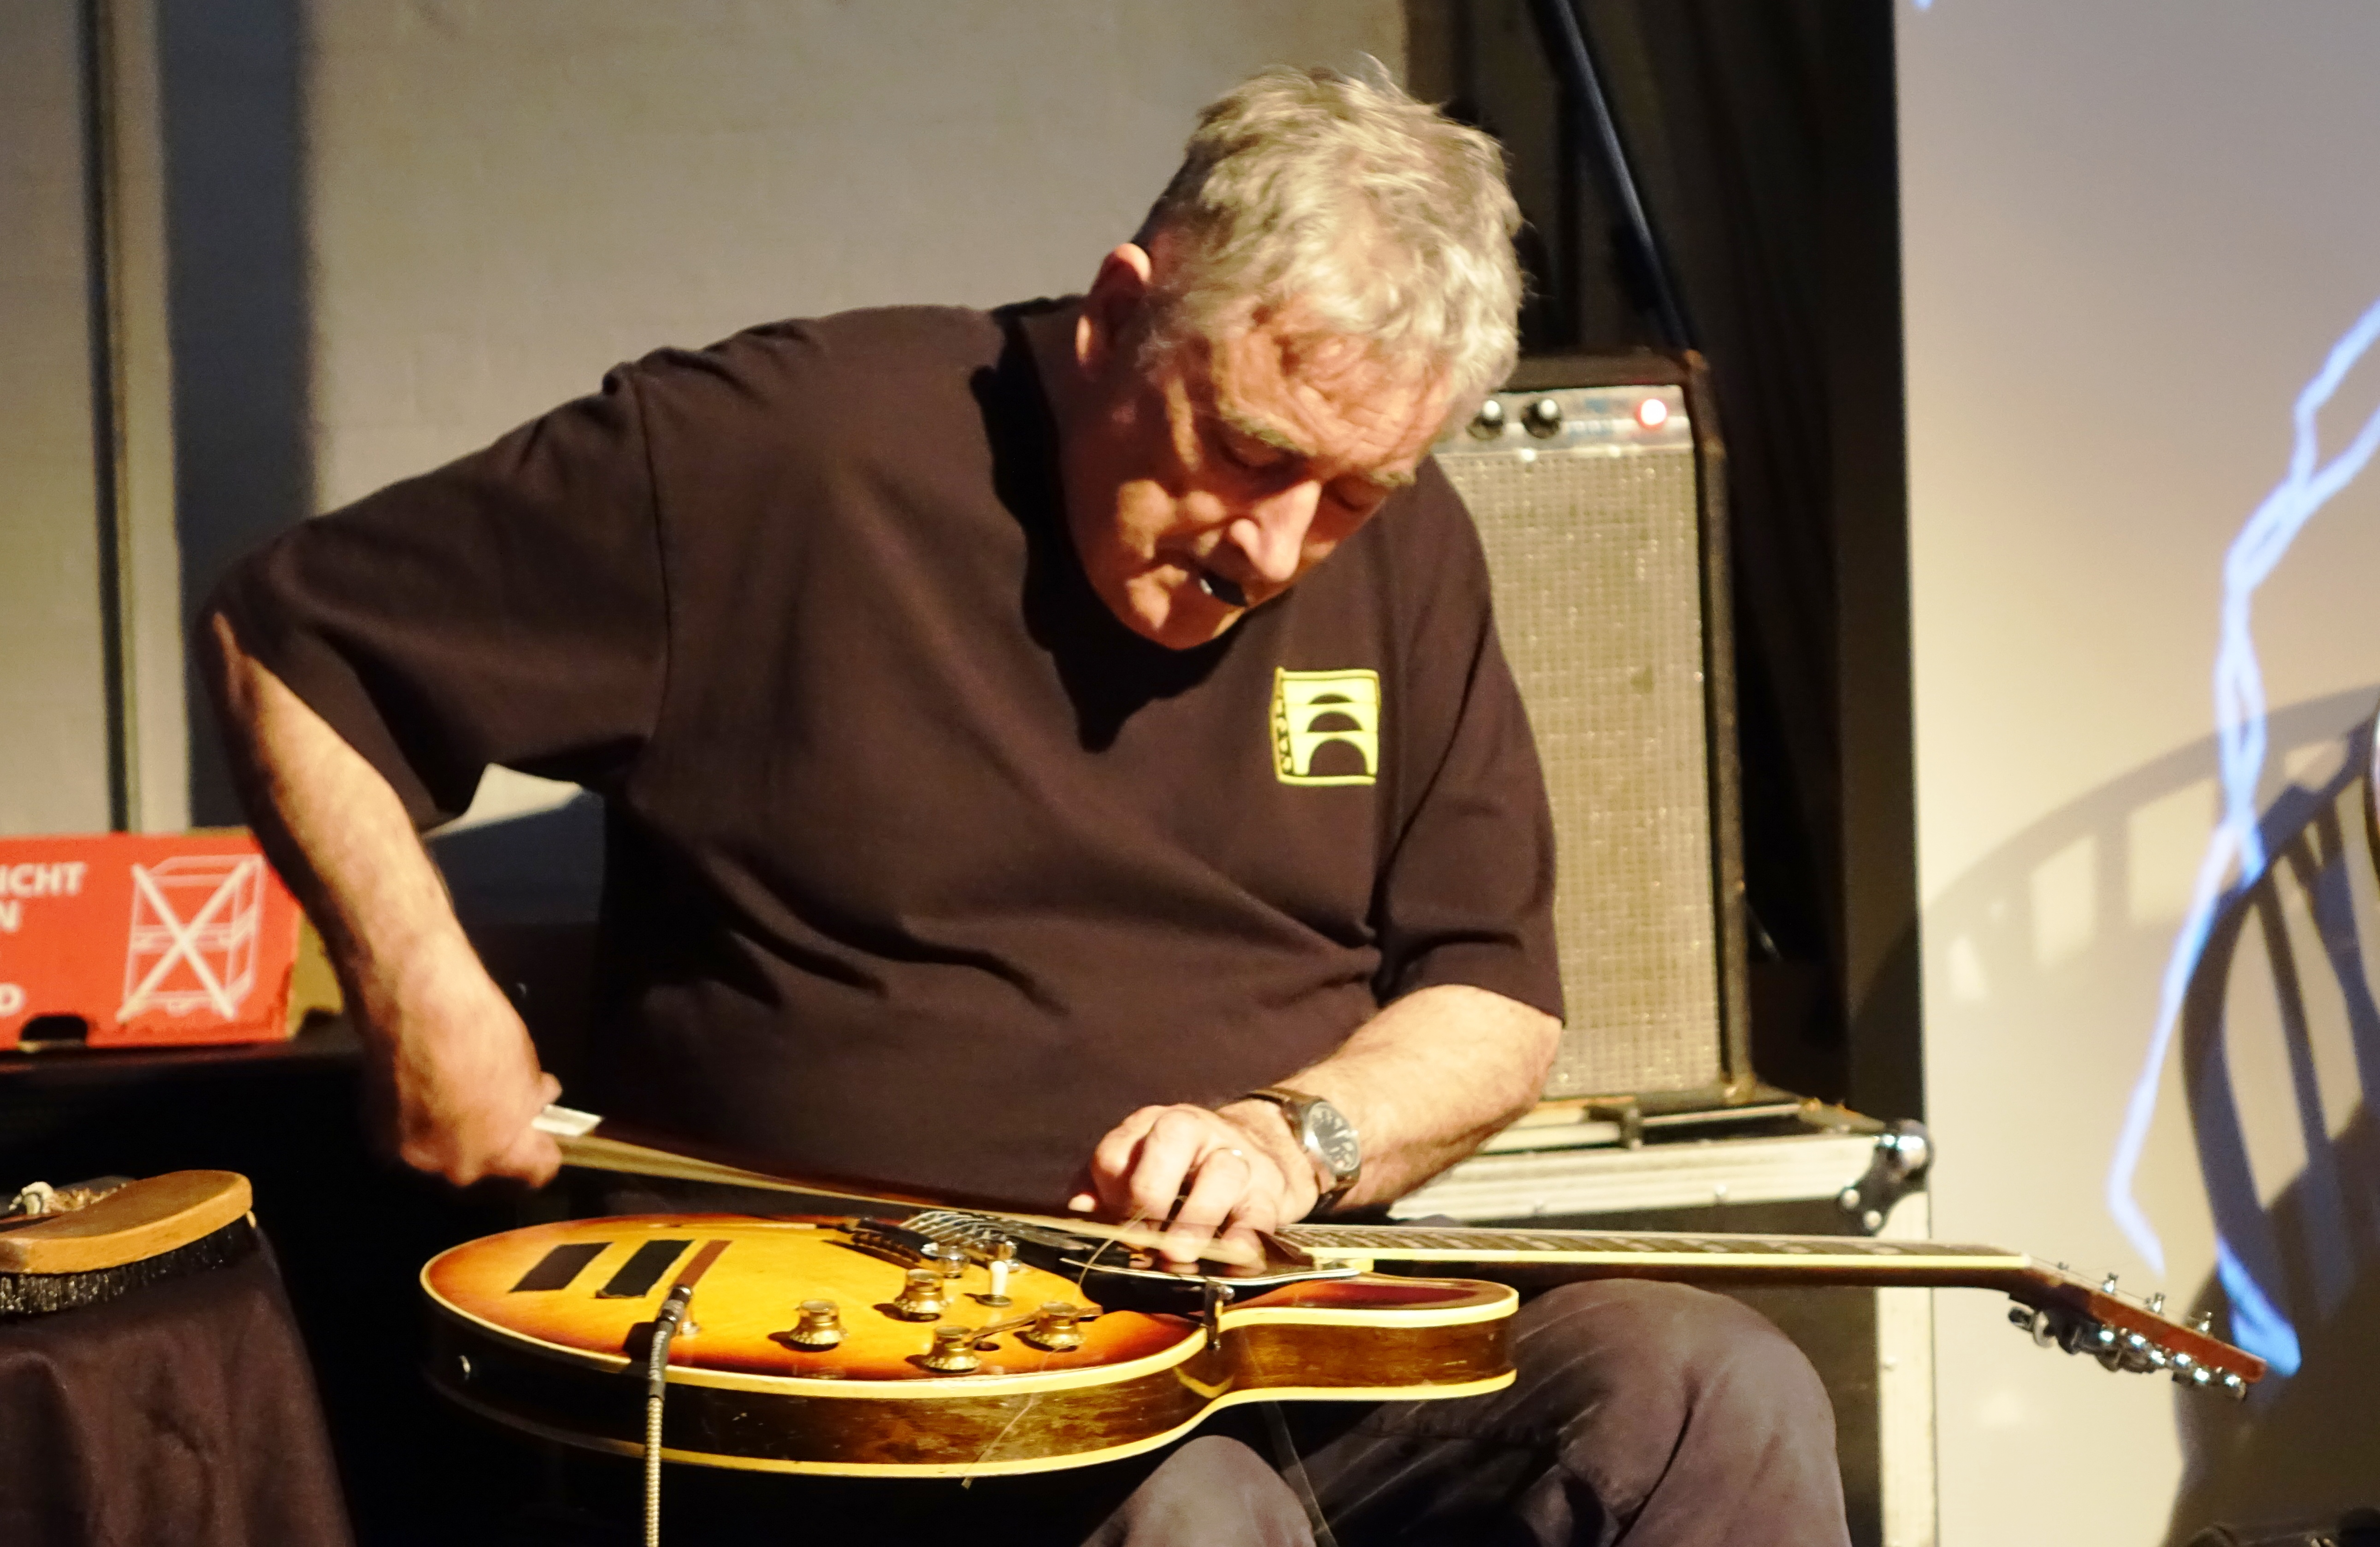 Fred Frith at Cafe Oto, London in June 2019